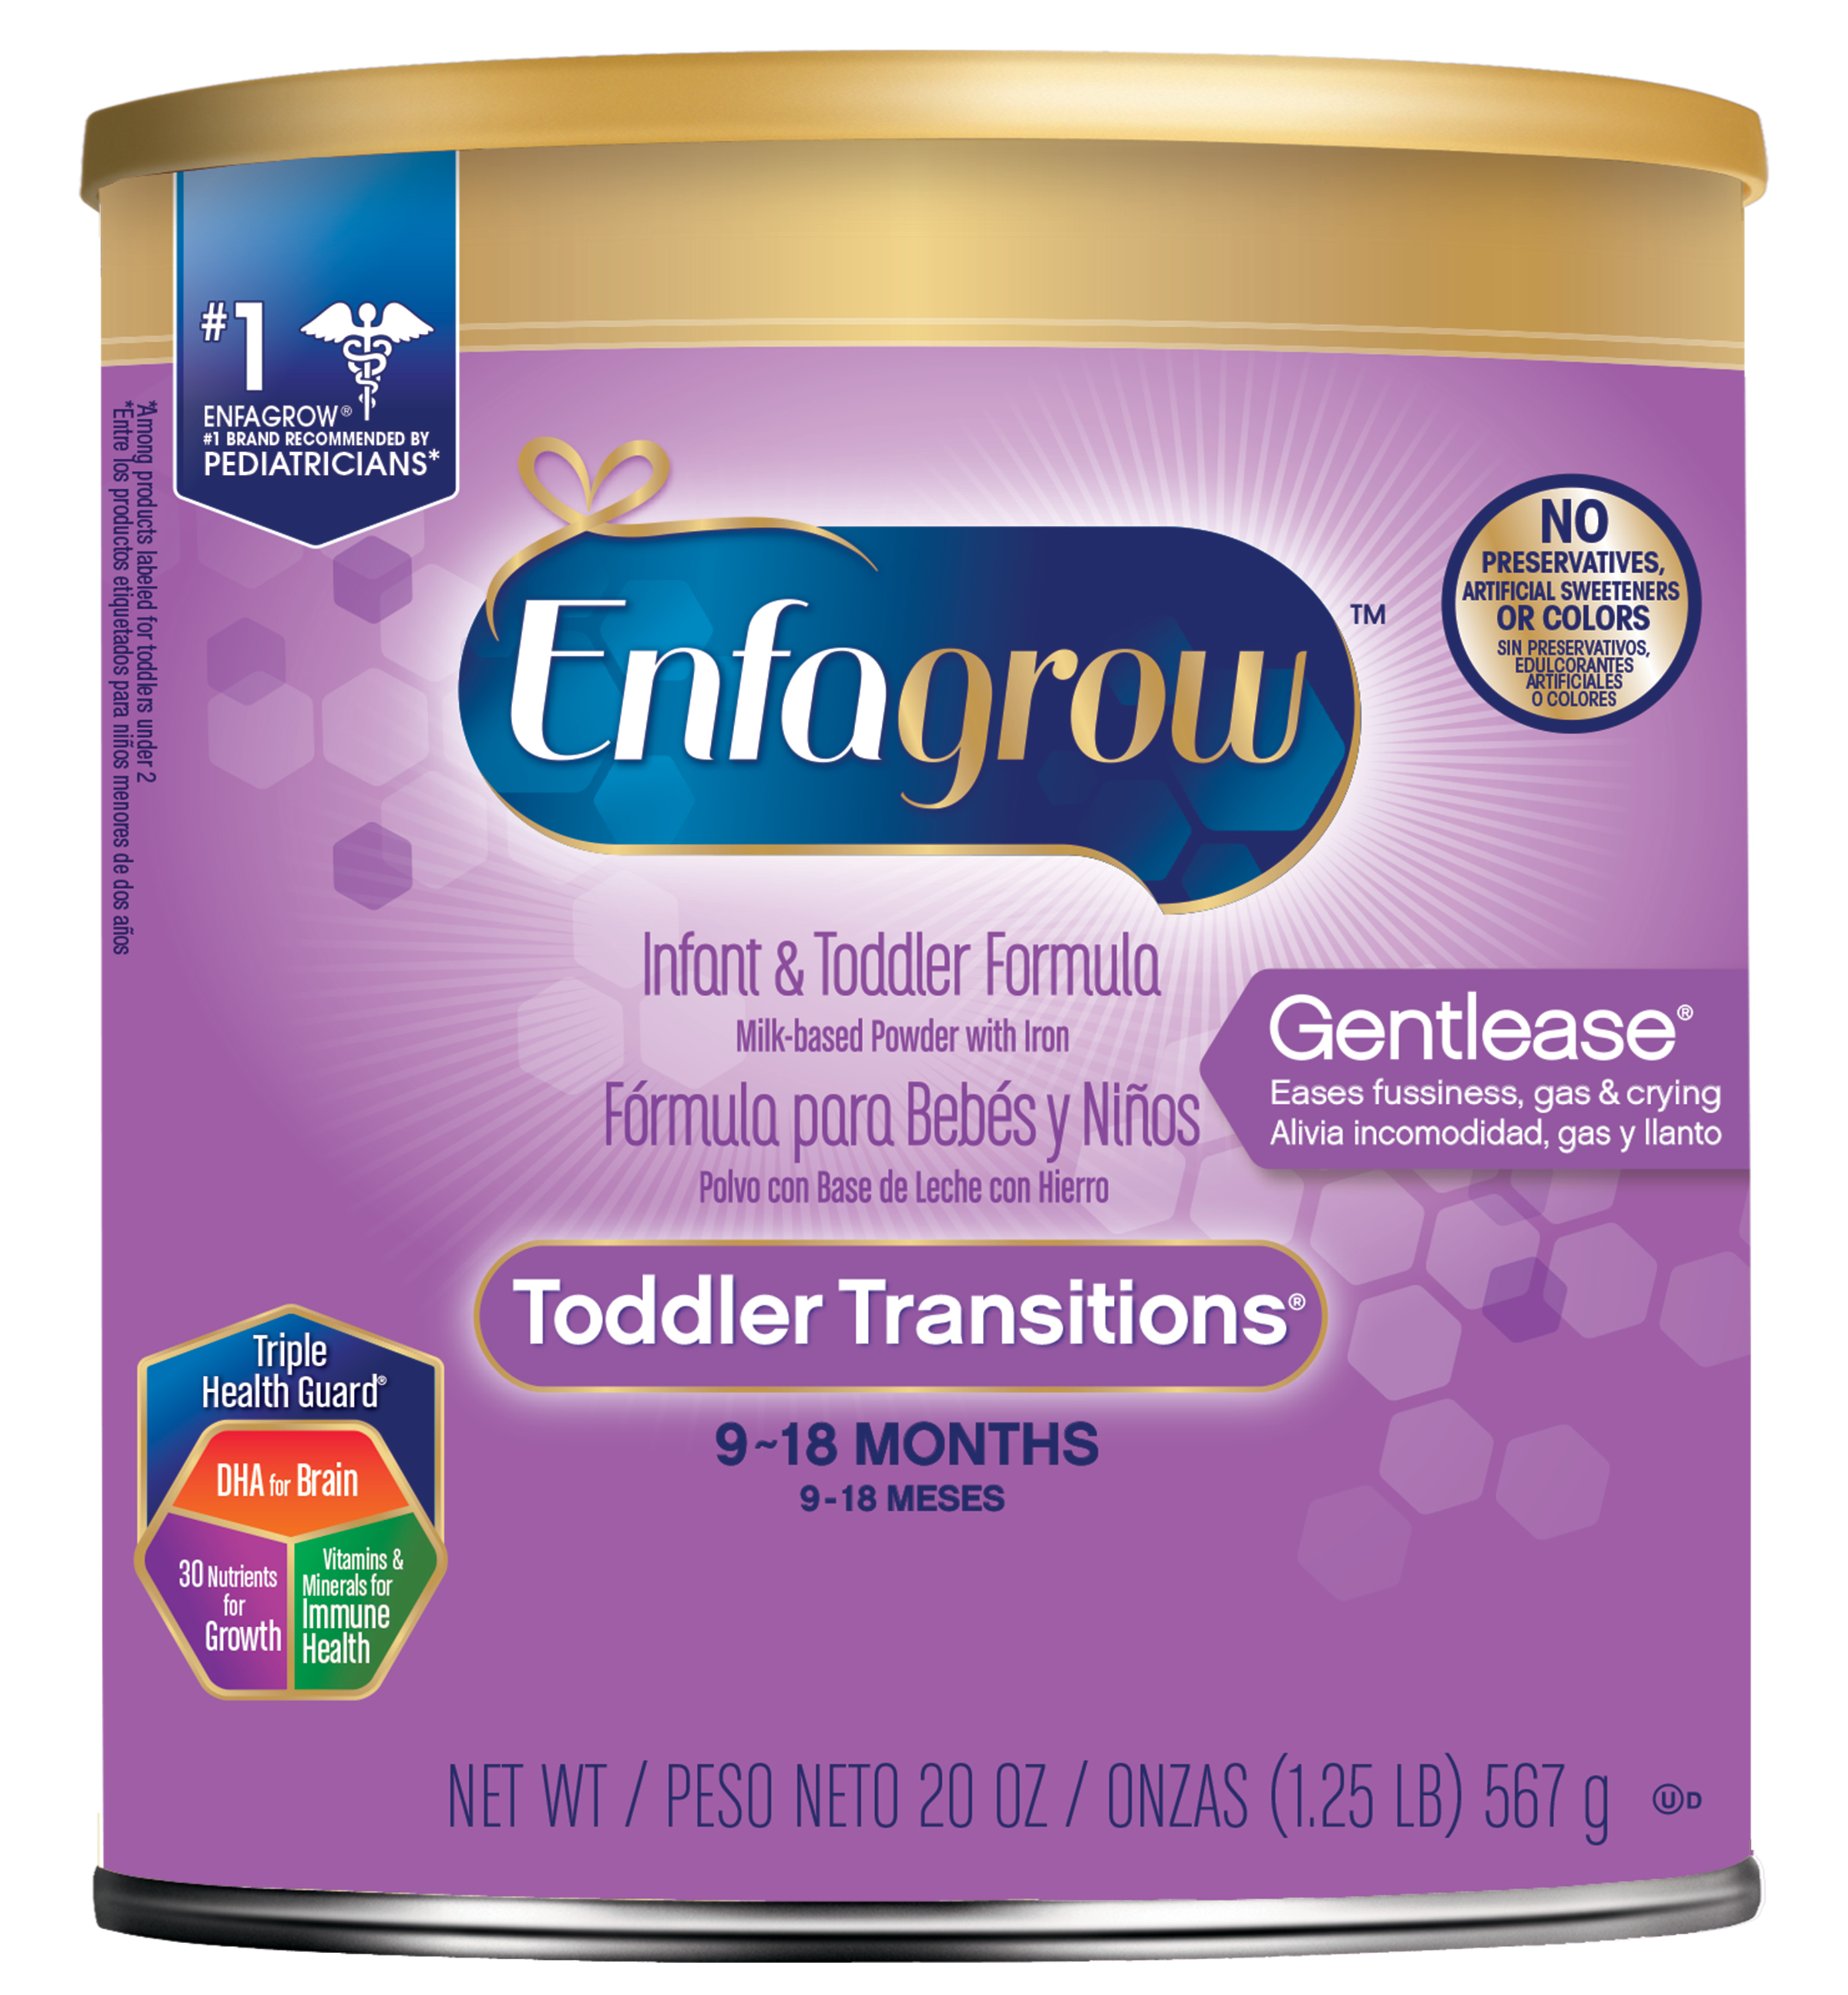 Enfagrow Toddler Transitions Gentlease Formula, 20 oz, 4 count